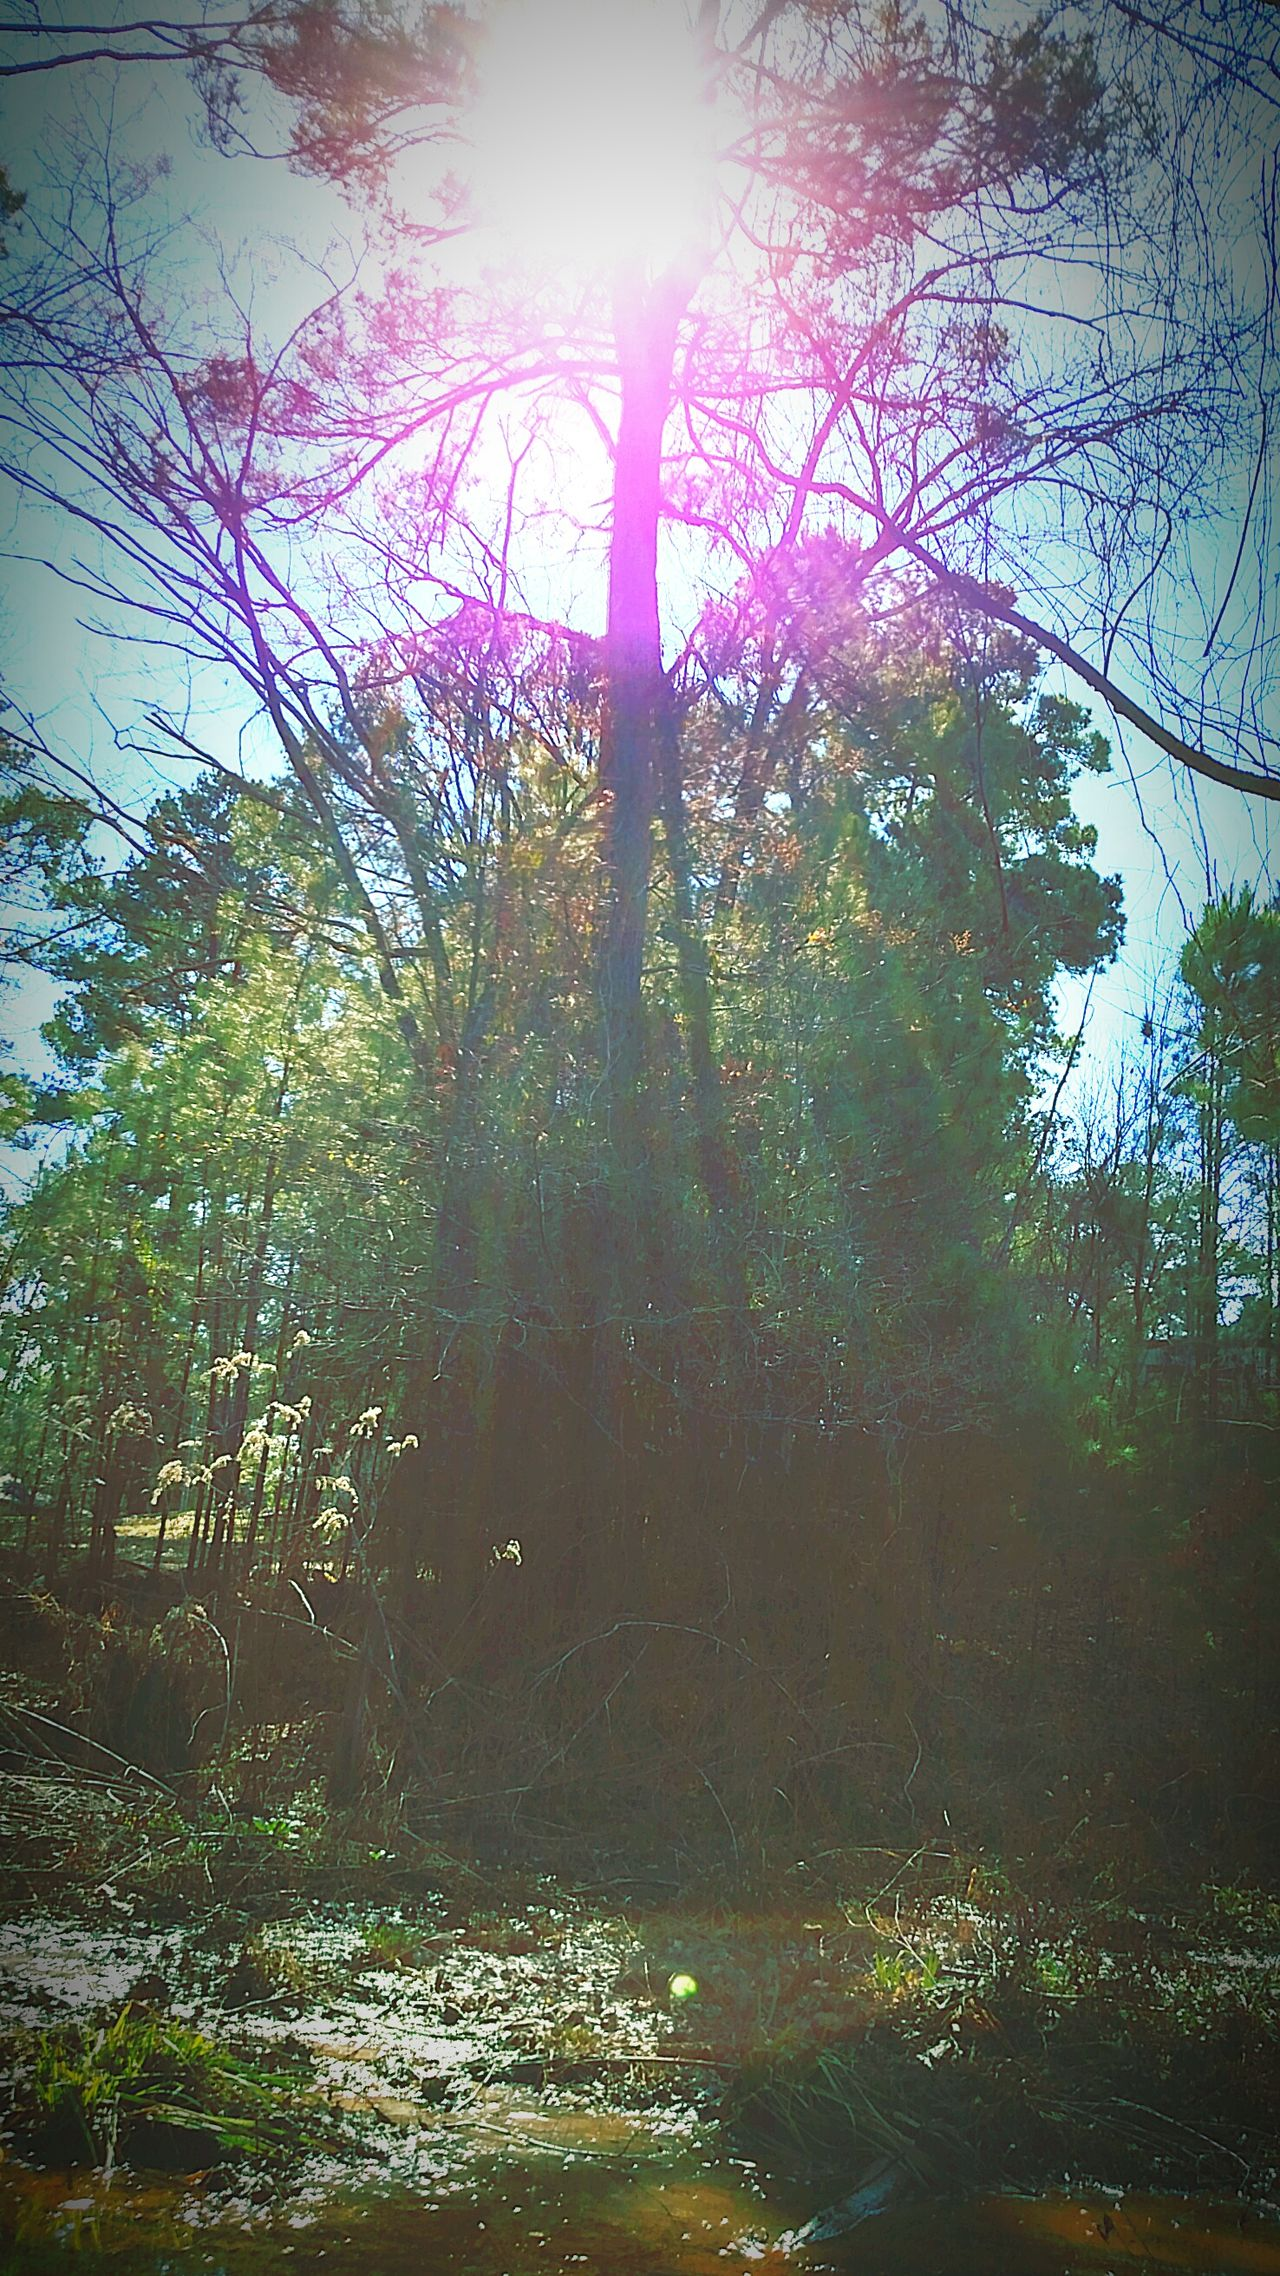 River Reagan Photography Sunday Afternoon February 2012 Sunshine Filtering Through Foliage